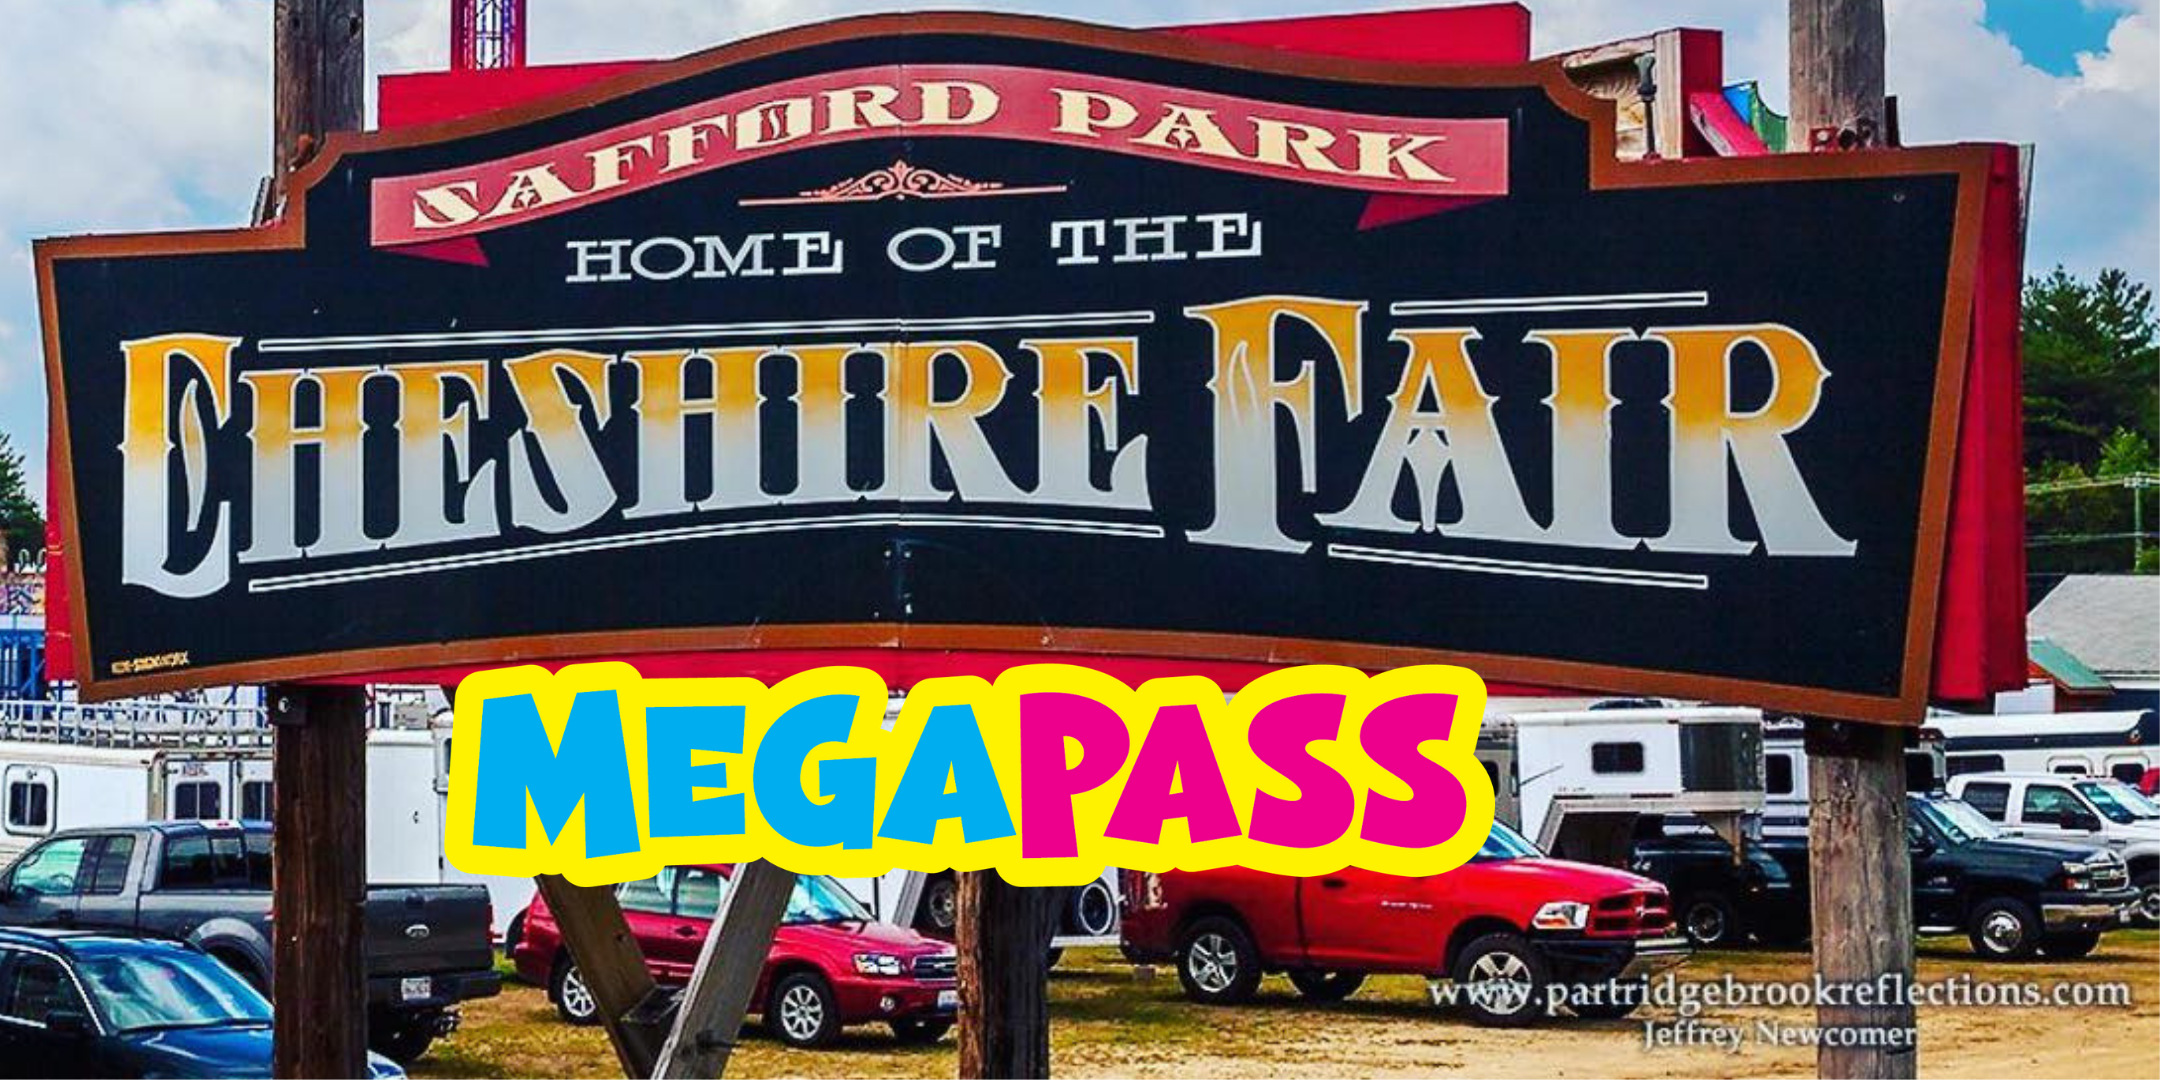 Purchase megapass tickets - 1 Day - $35Admission + Unlimited mechanical rides